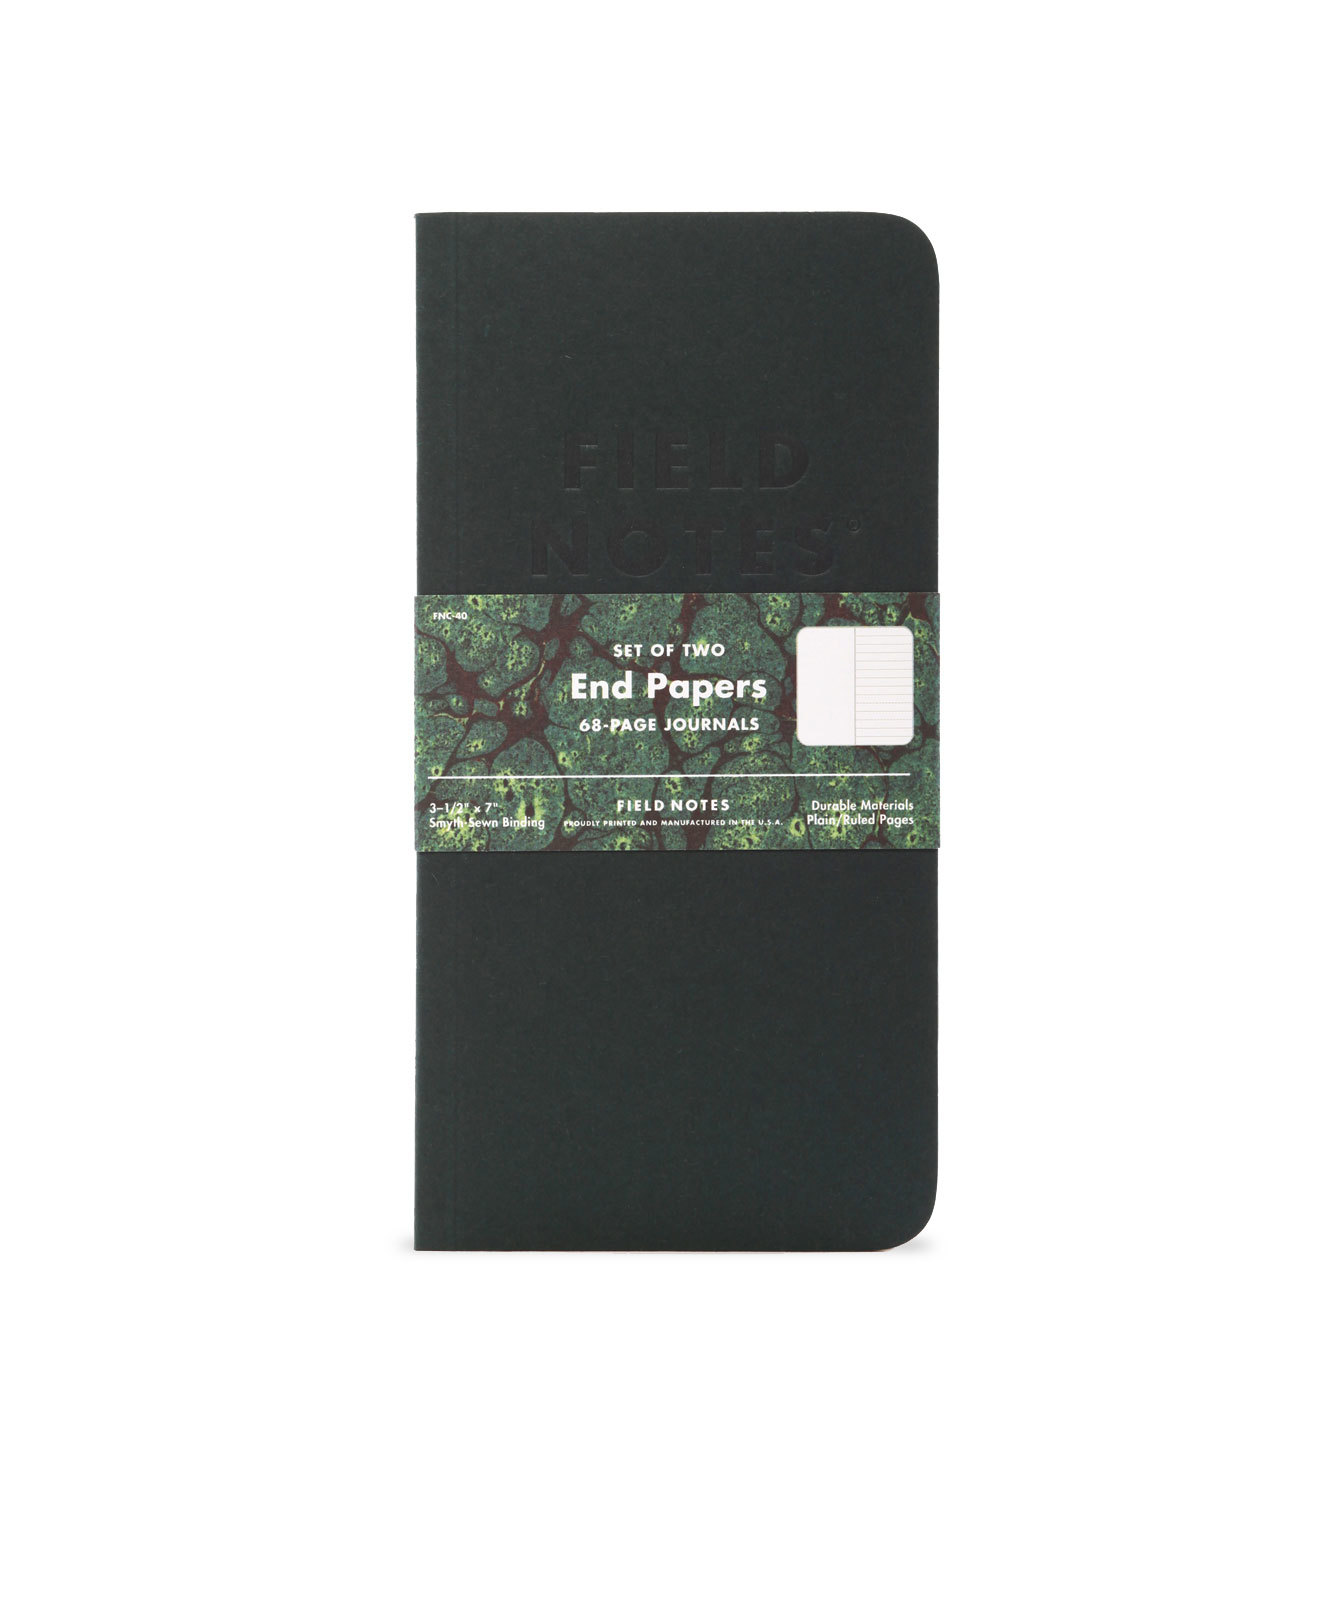 Field Notes, End Papers, Edition, Vorsatz marmoriert, Notizhefte,